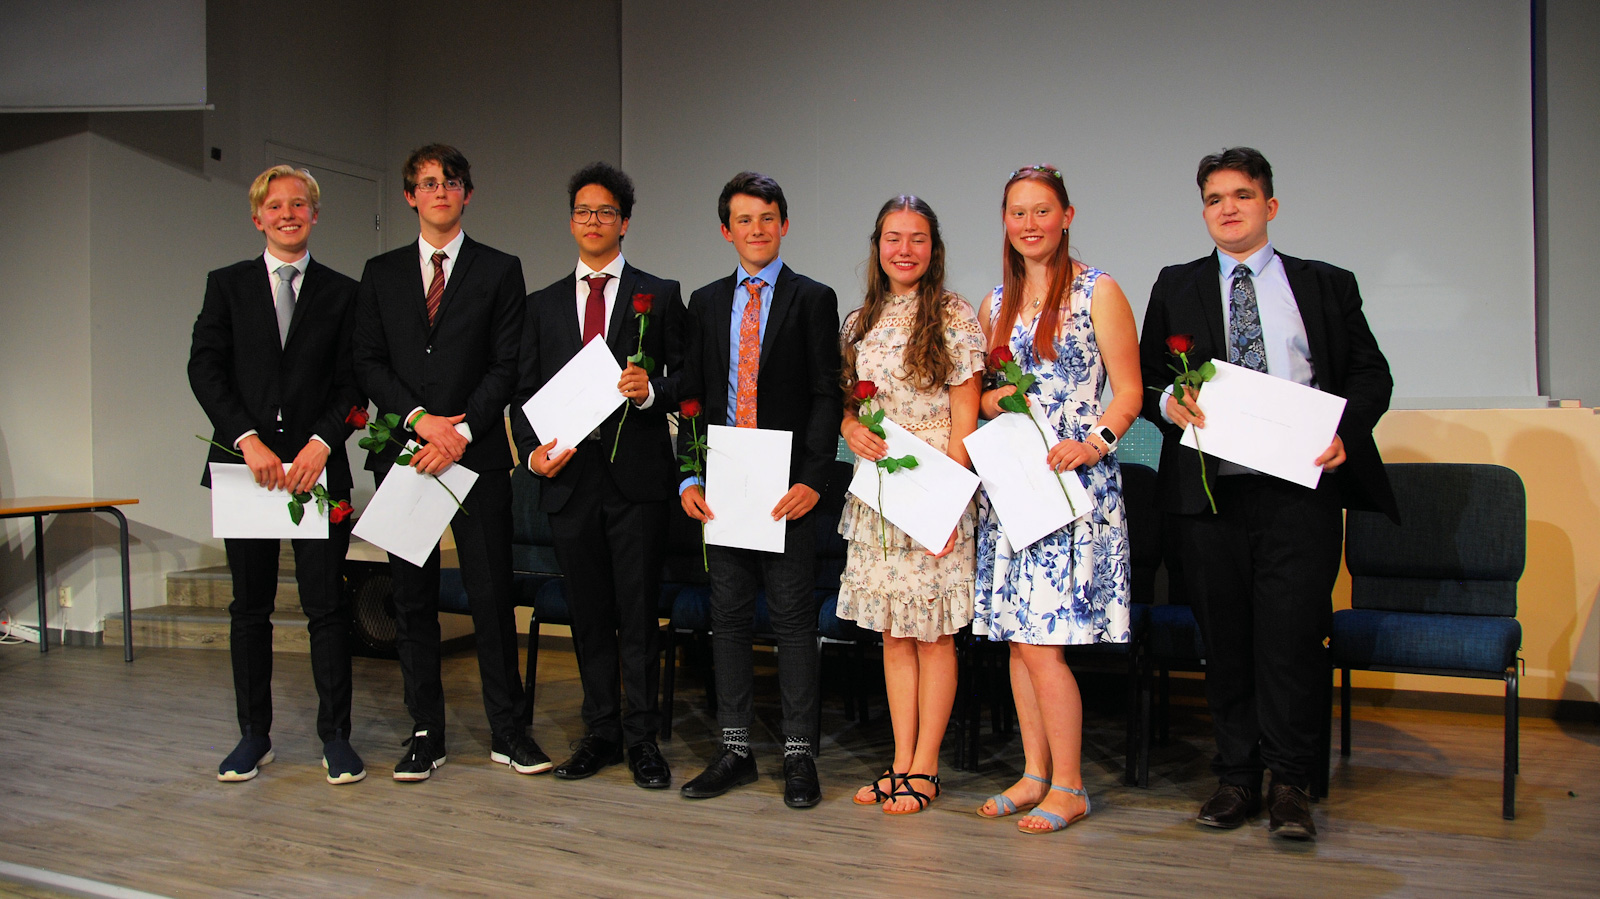 A group of awarded students at Tyrifjord school edited1600